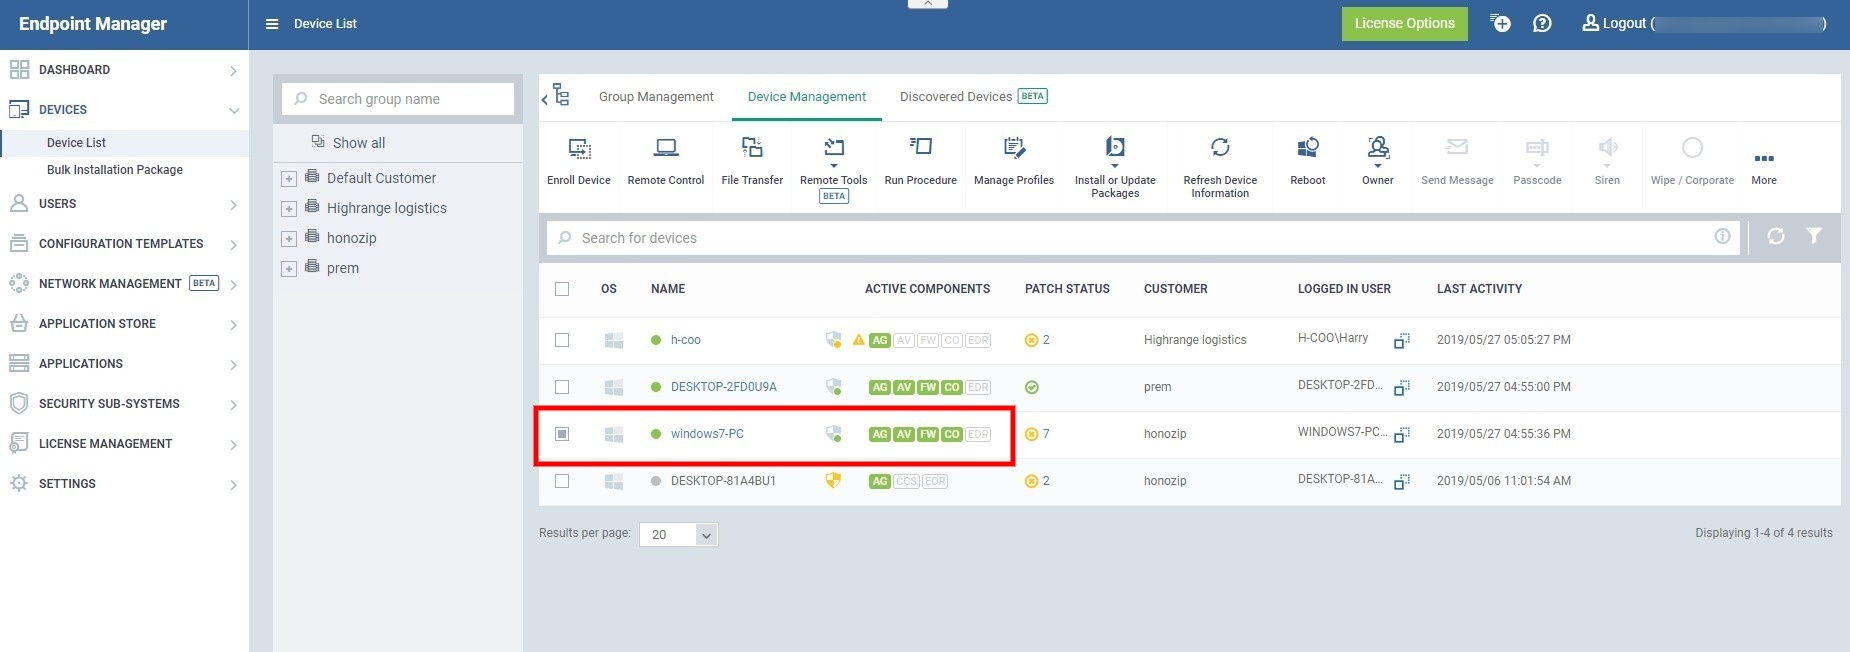 How to deploy a Comodo EDR agent from the Endpoint Manager